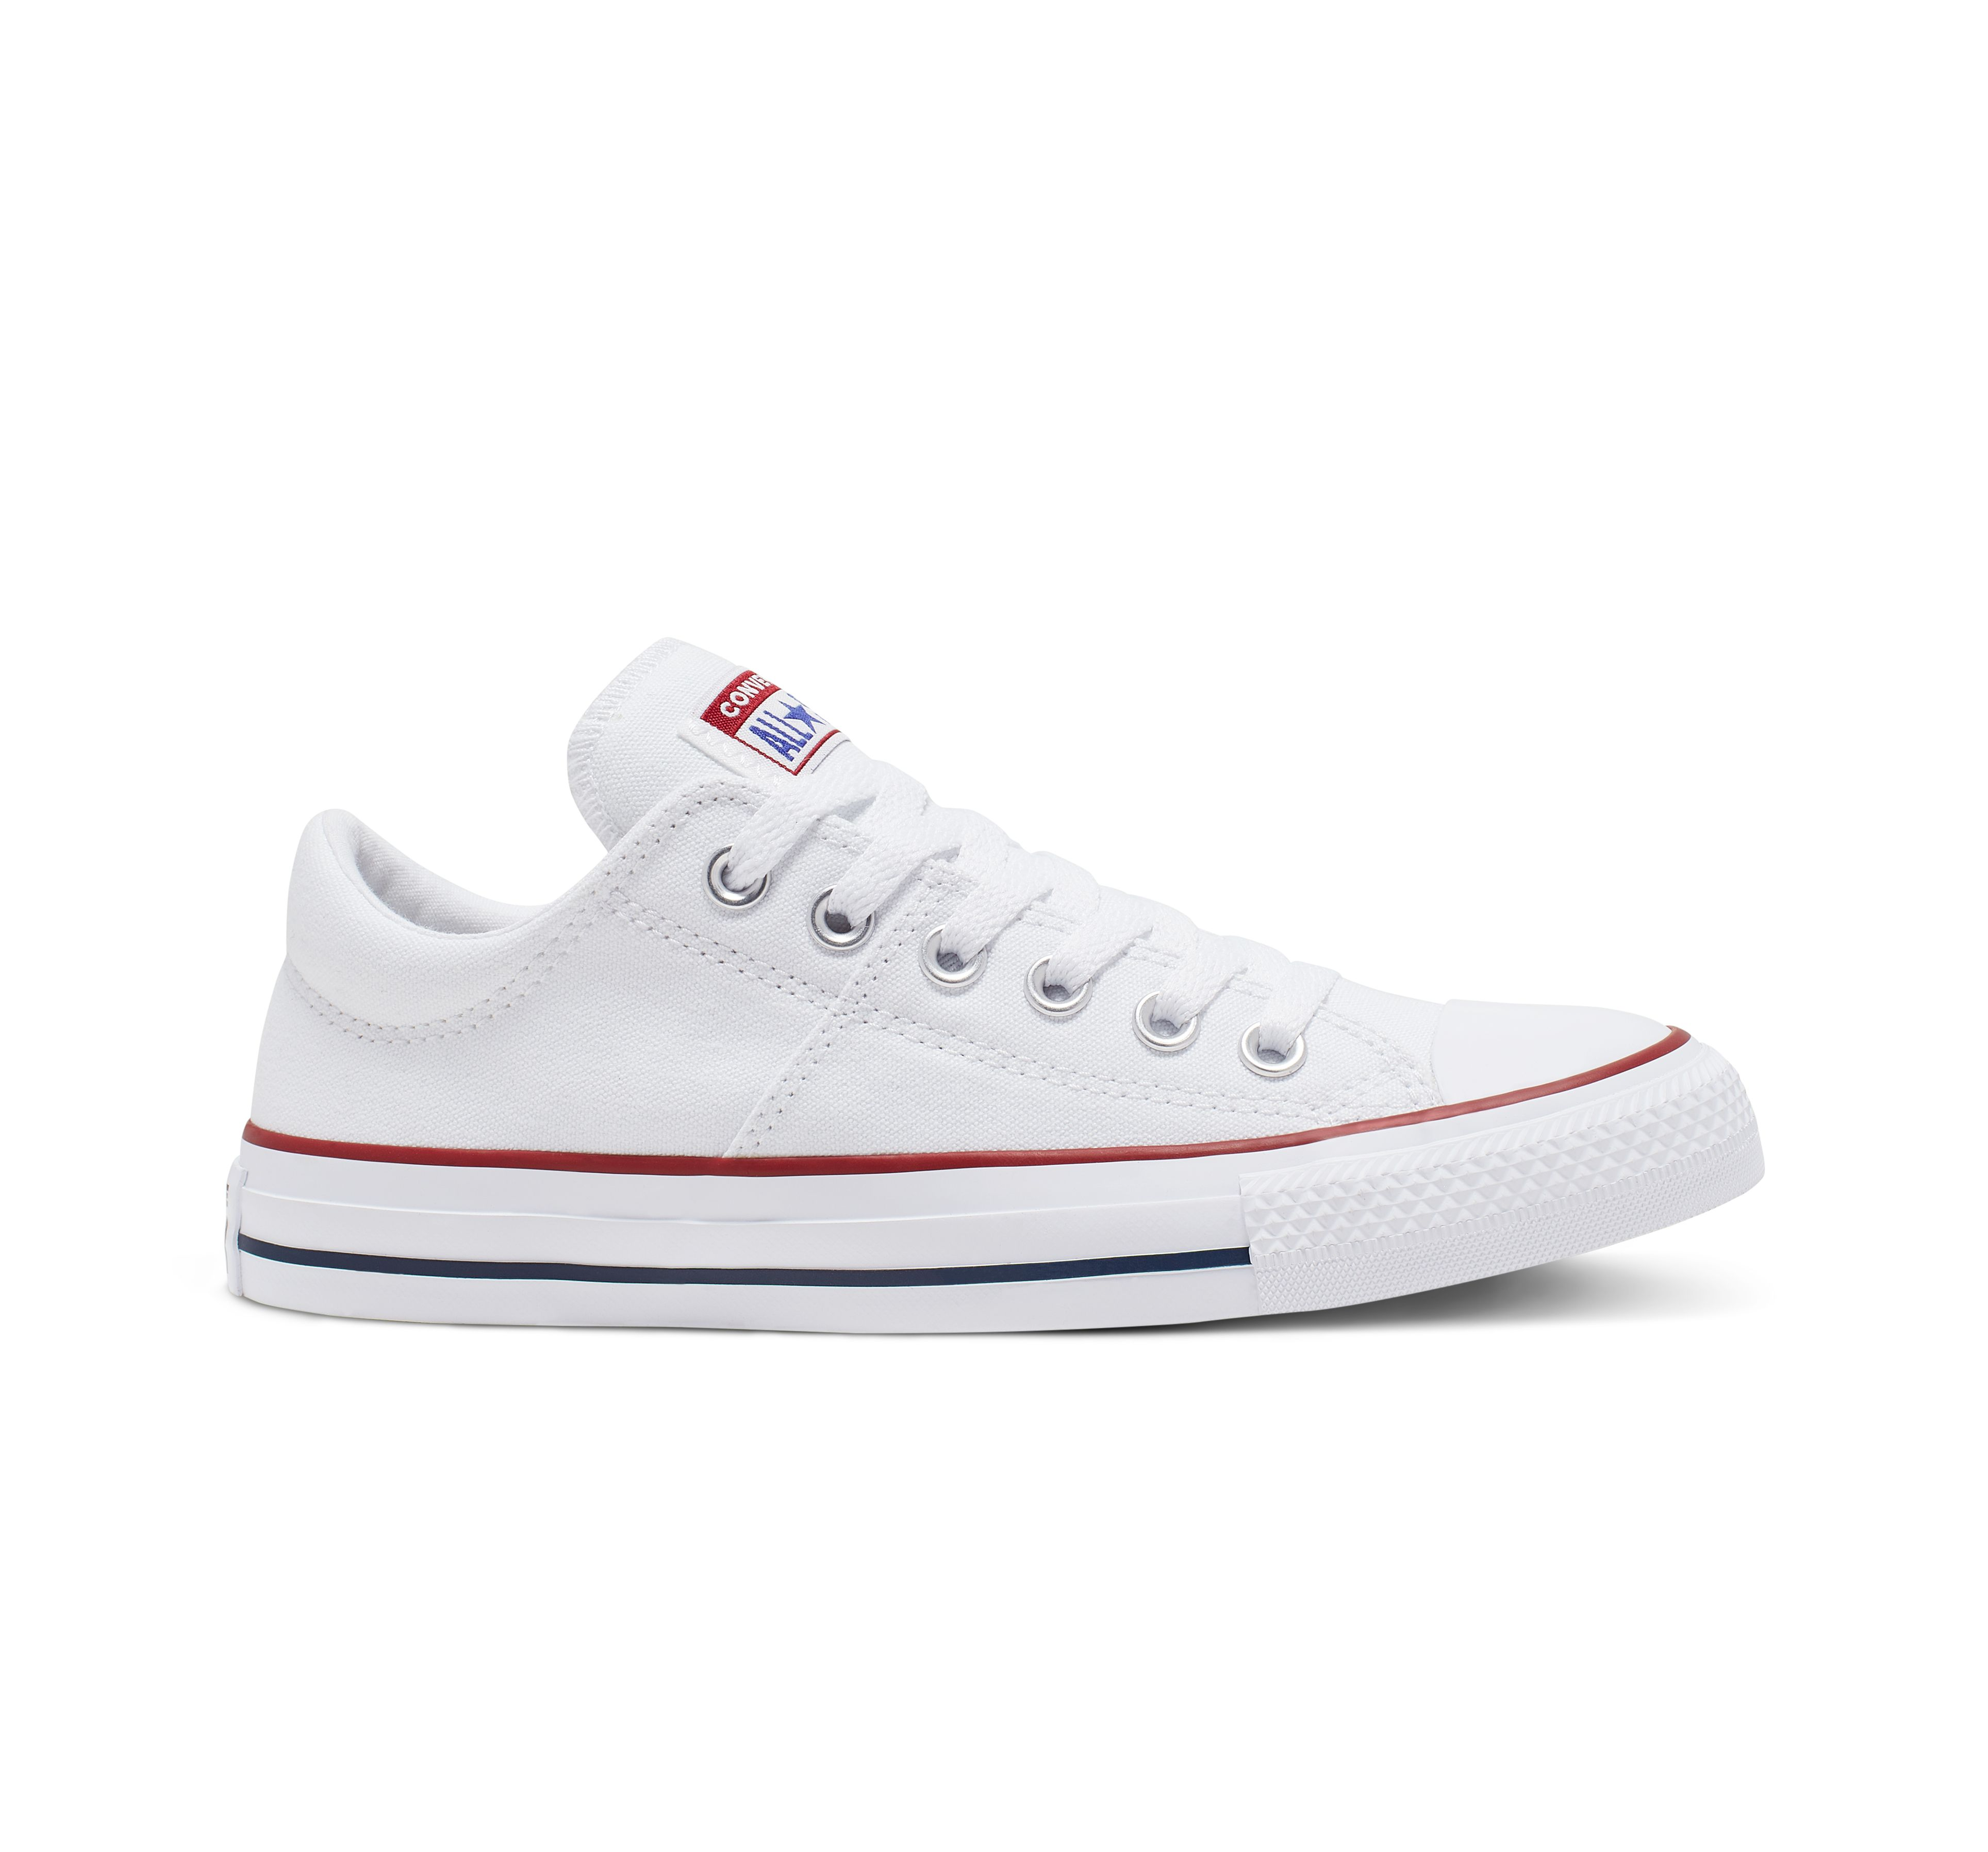 Bas prix Converse Chuck Taylor All Star Madison Low Top